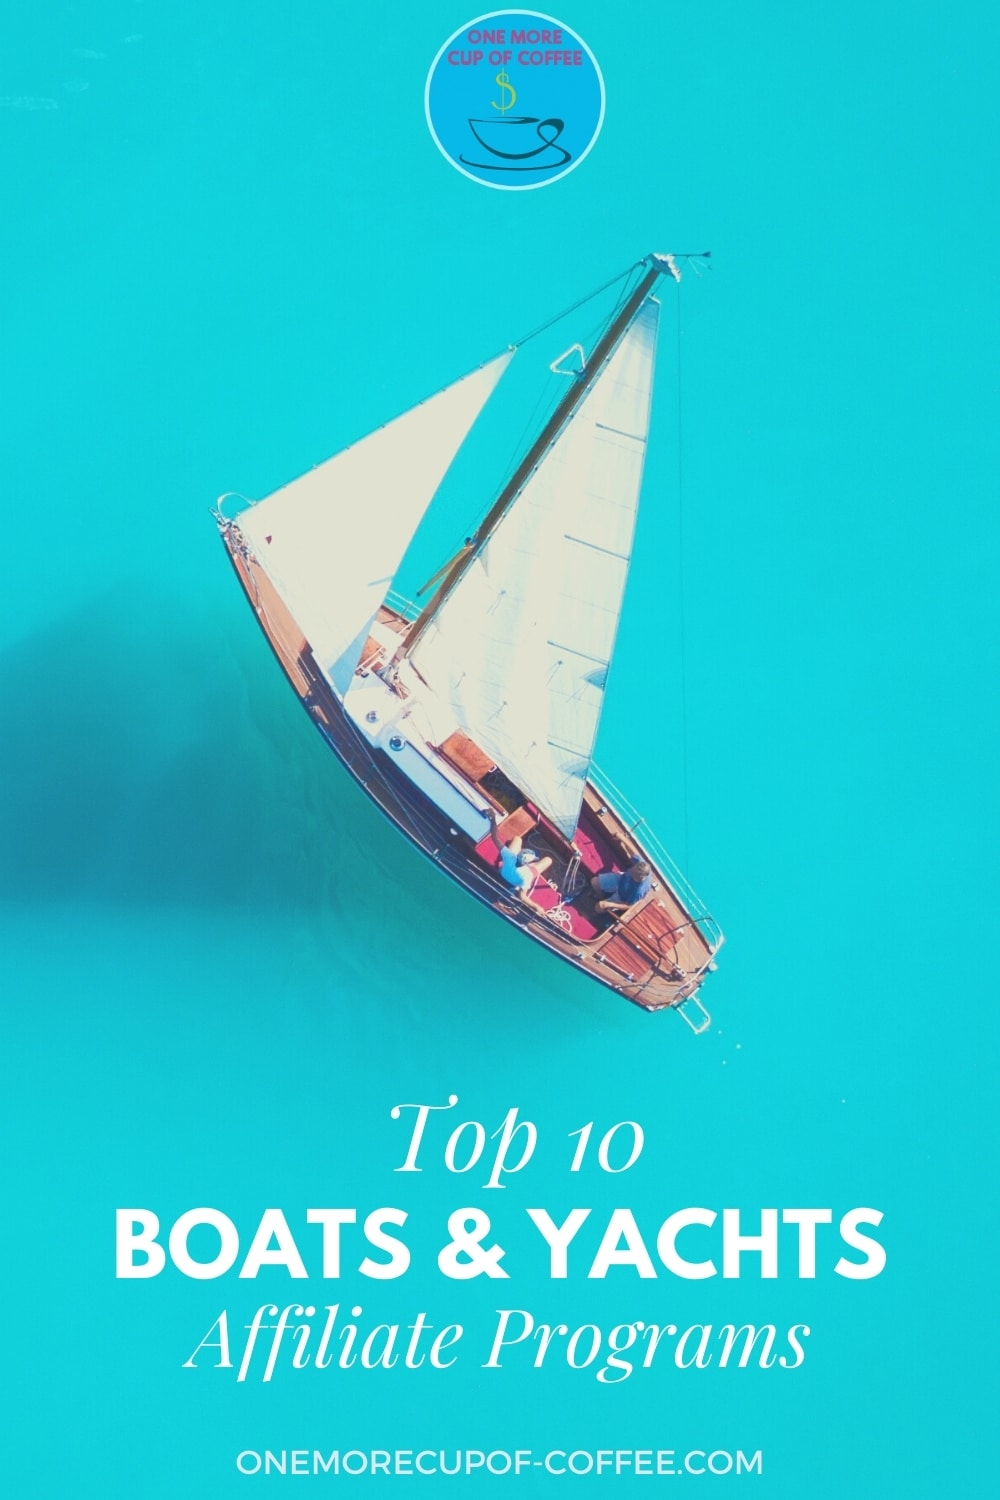 """top view of a boat with sail in aqua blue water, with text overlay """"Top 10 Boats & Yachts Affiliate Programs"""""""